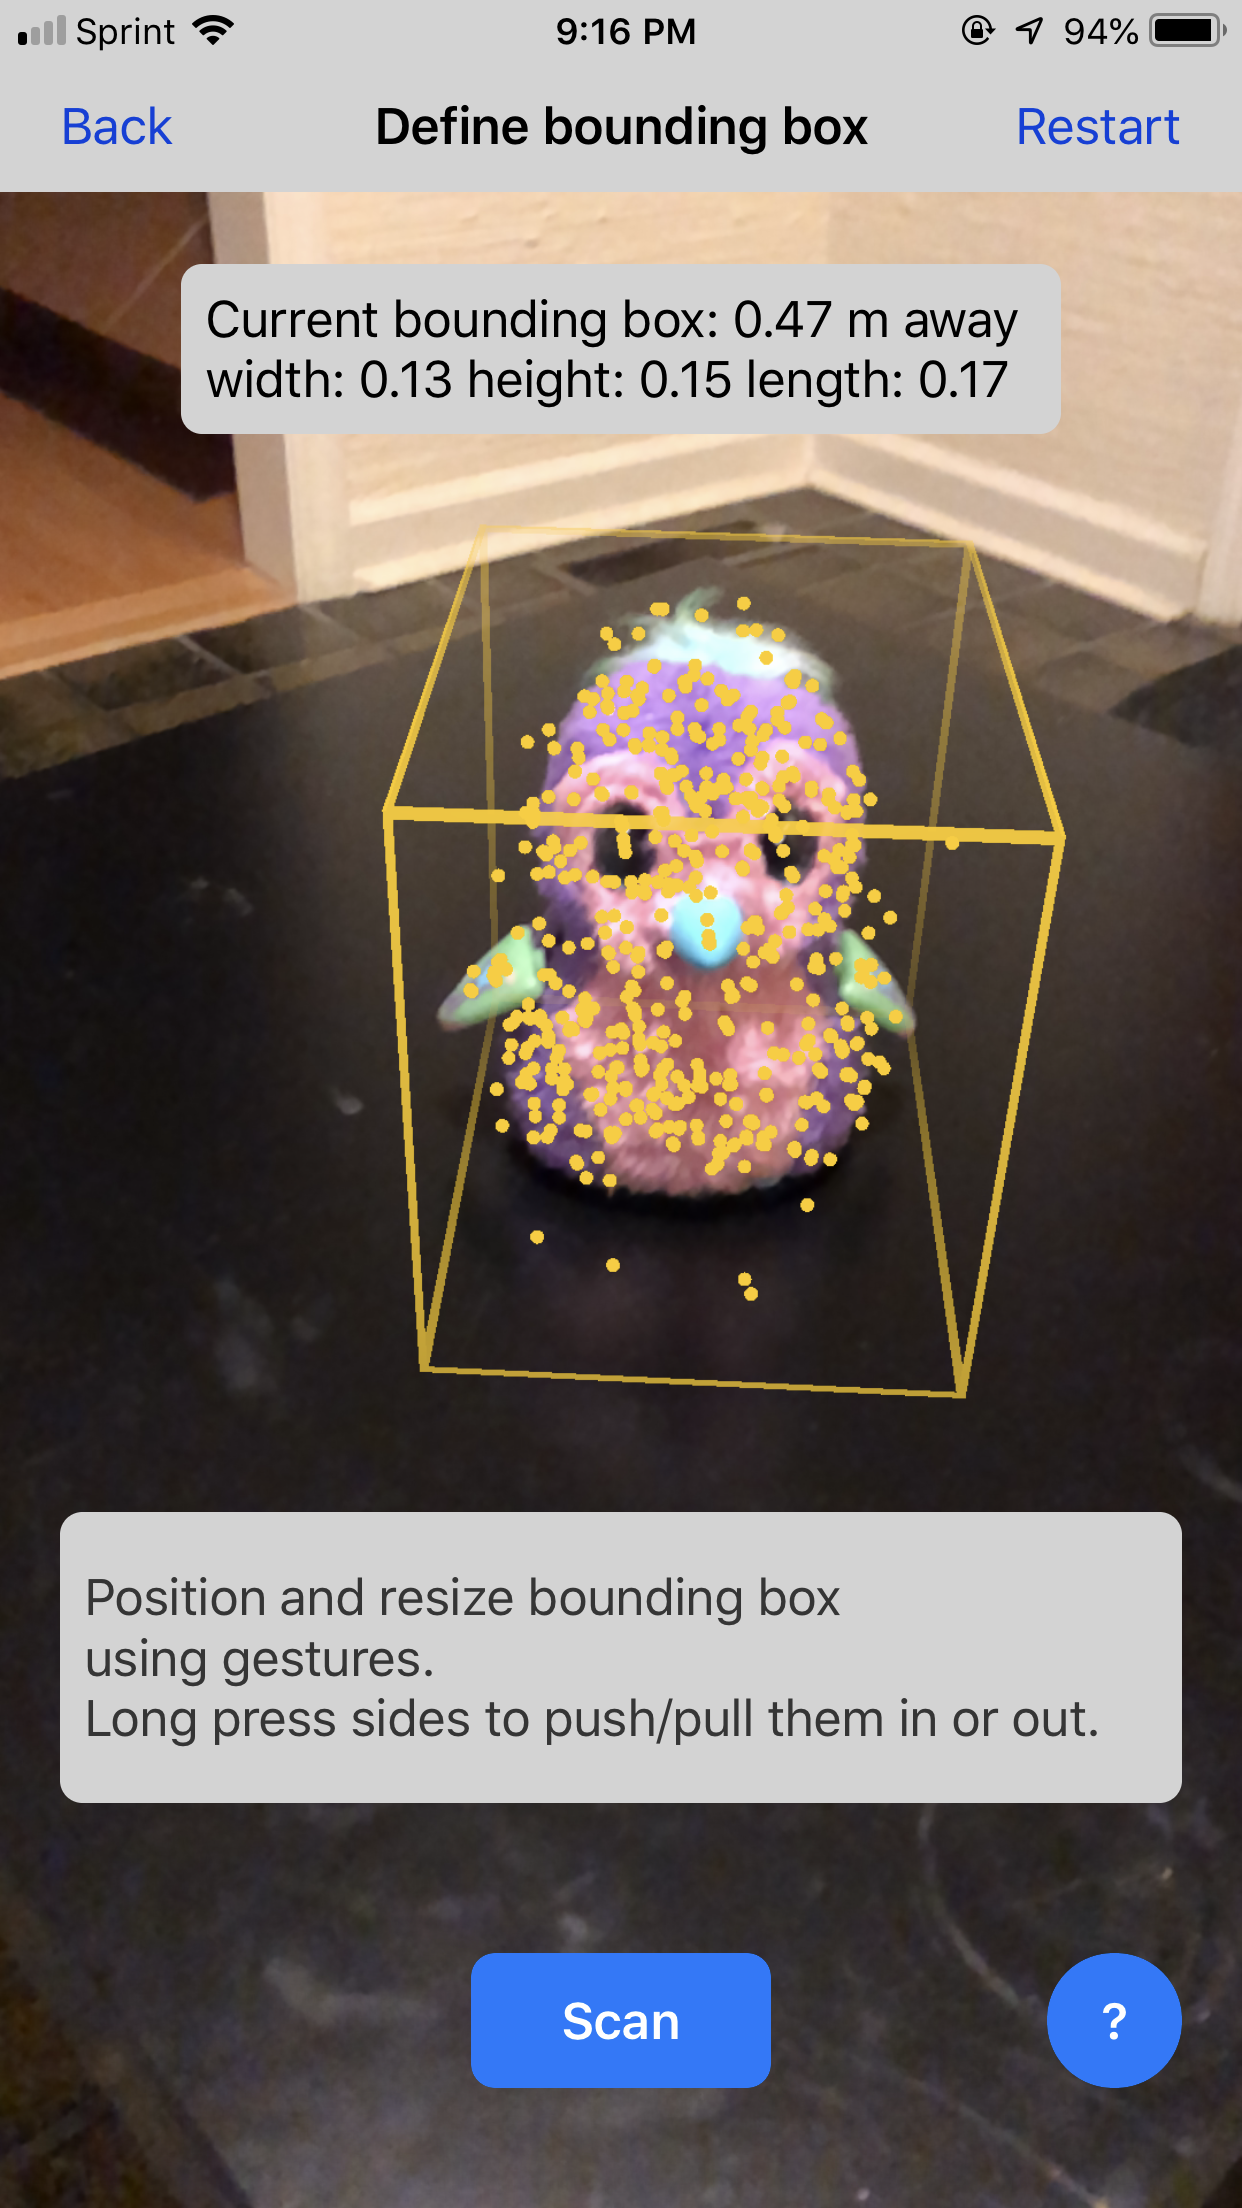 Building a Museum App with ARKit 2 | raywenderlich com